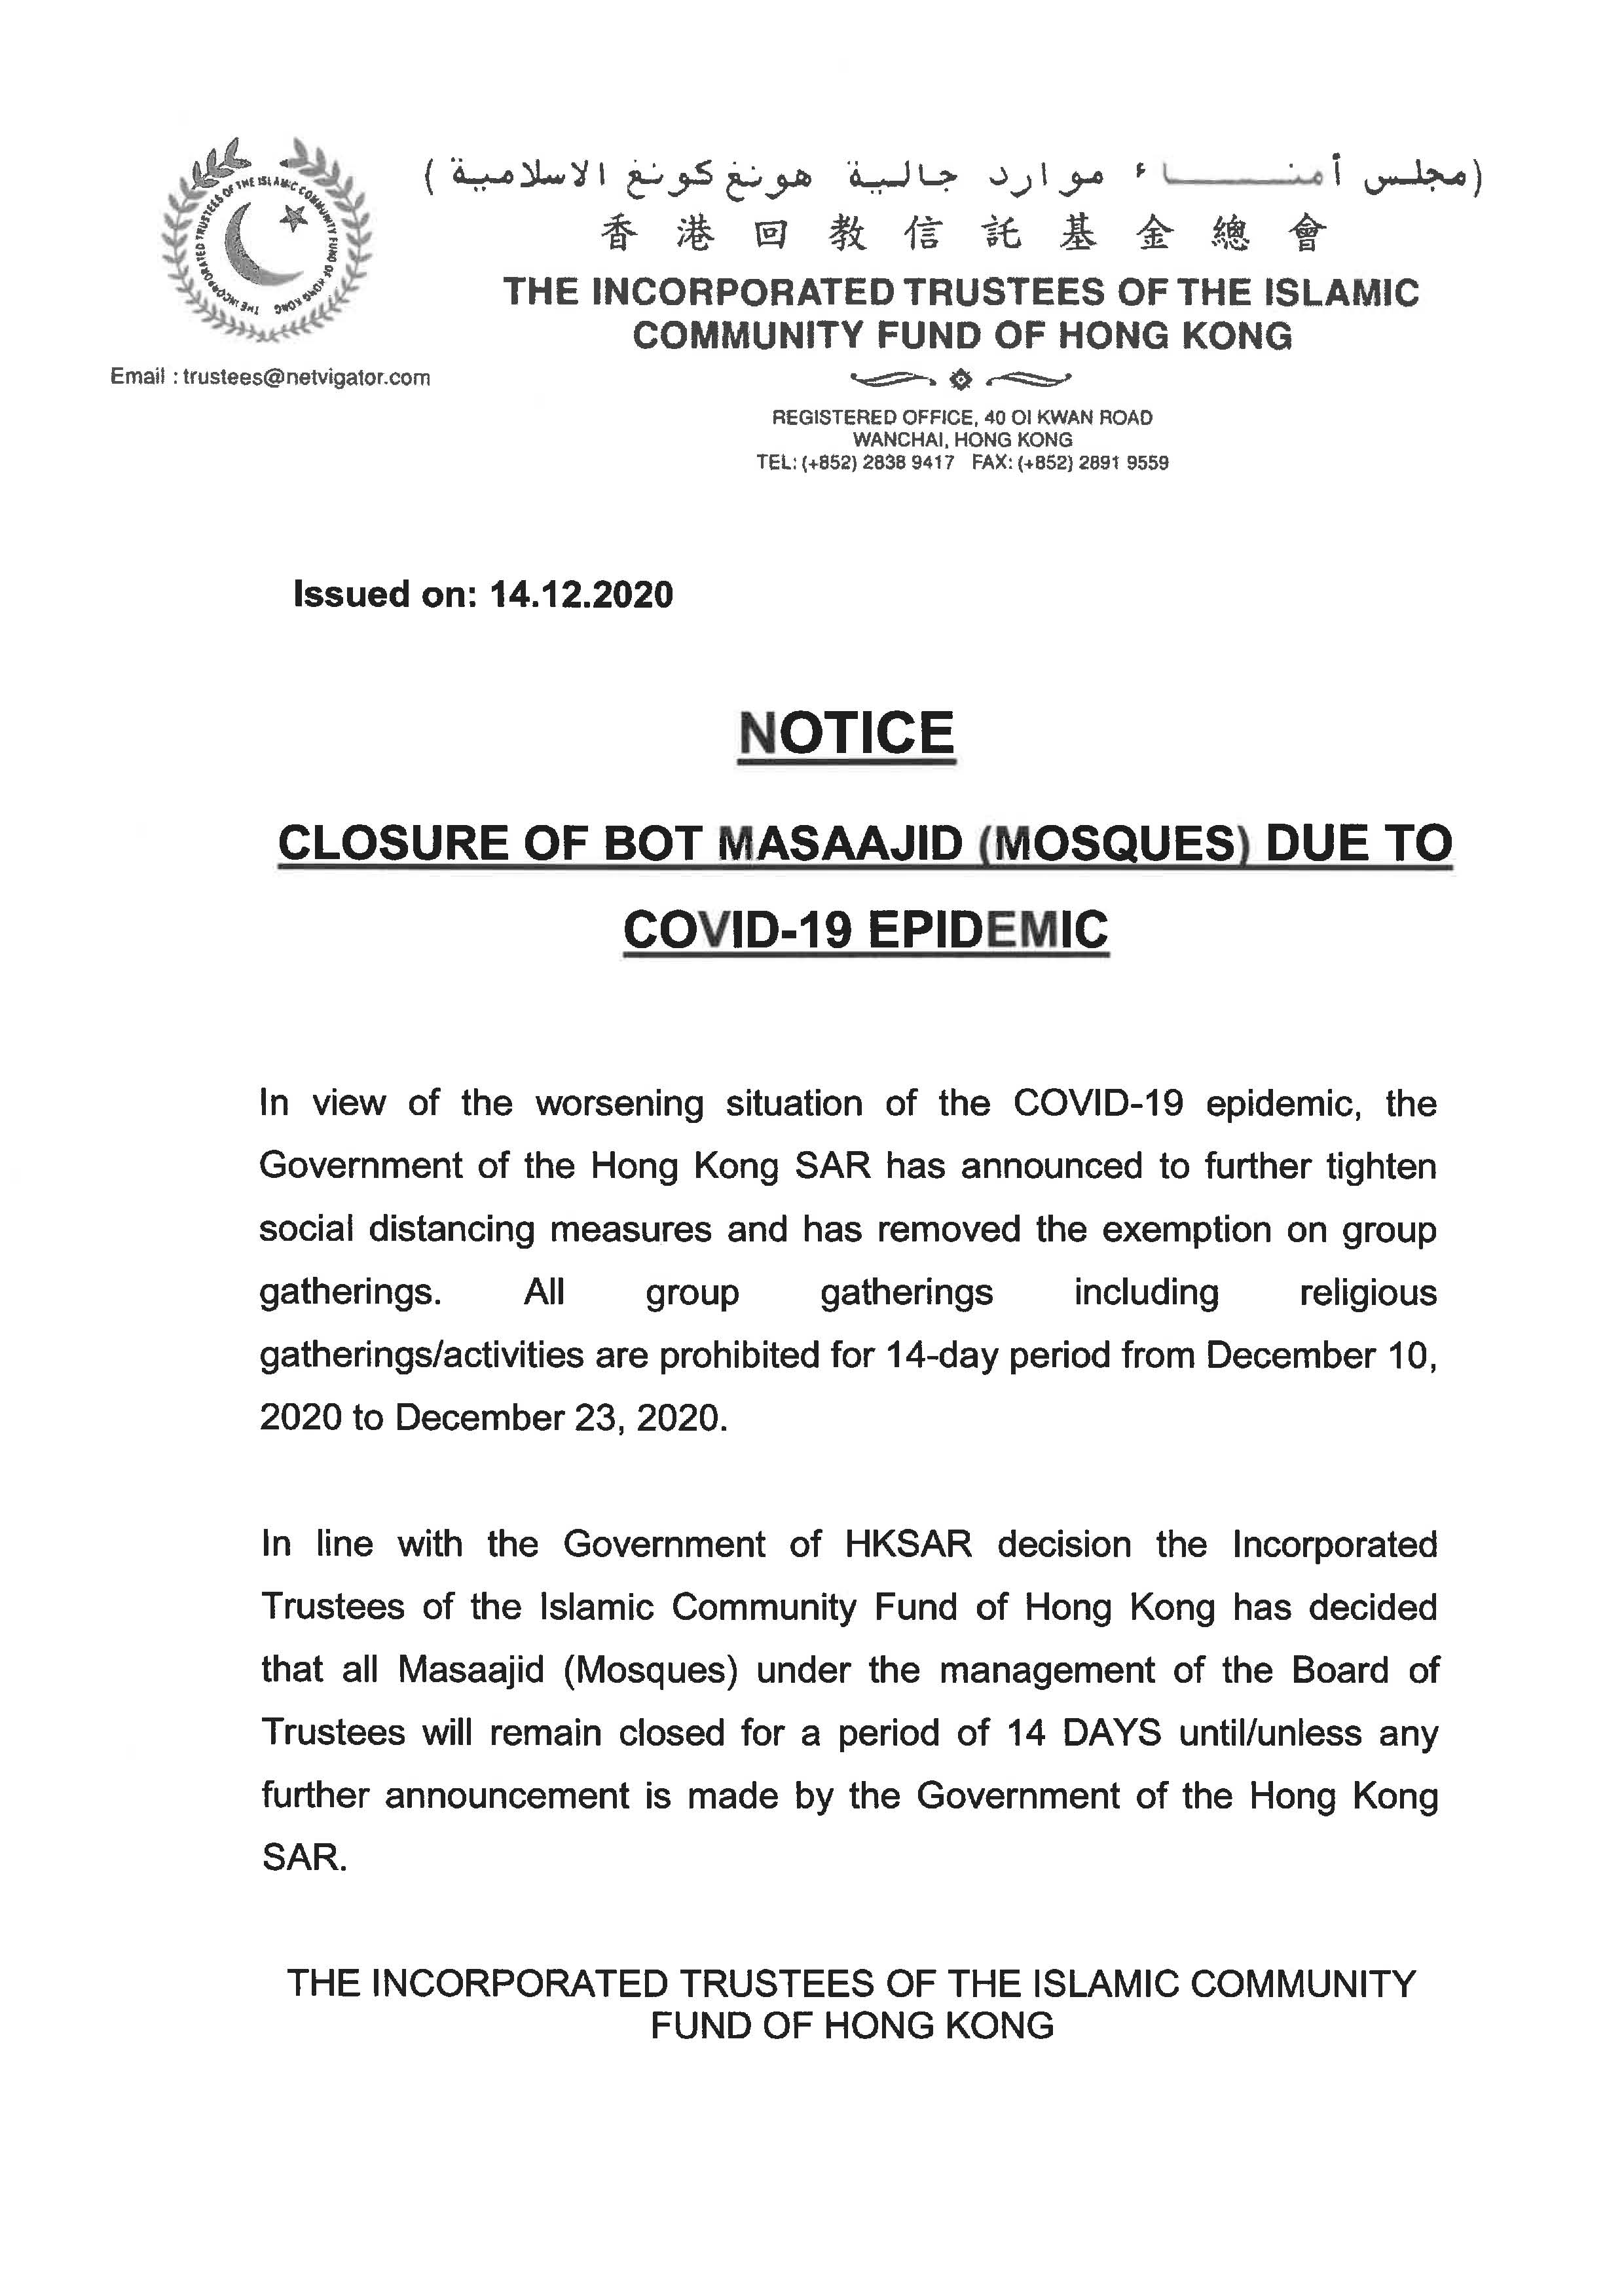 Closure of BOT Masjids due to COVID-19 (14 December)